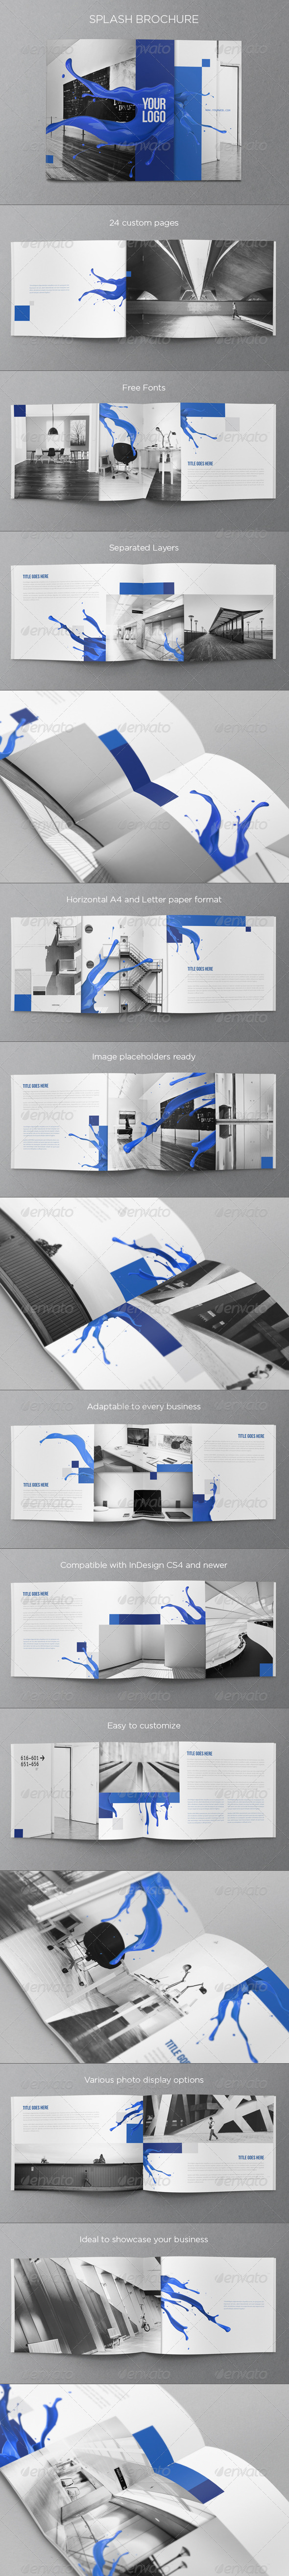 Splash Brochure - Brochures Print Templates